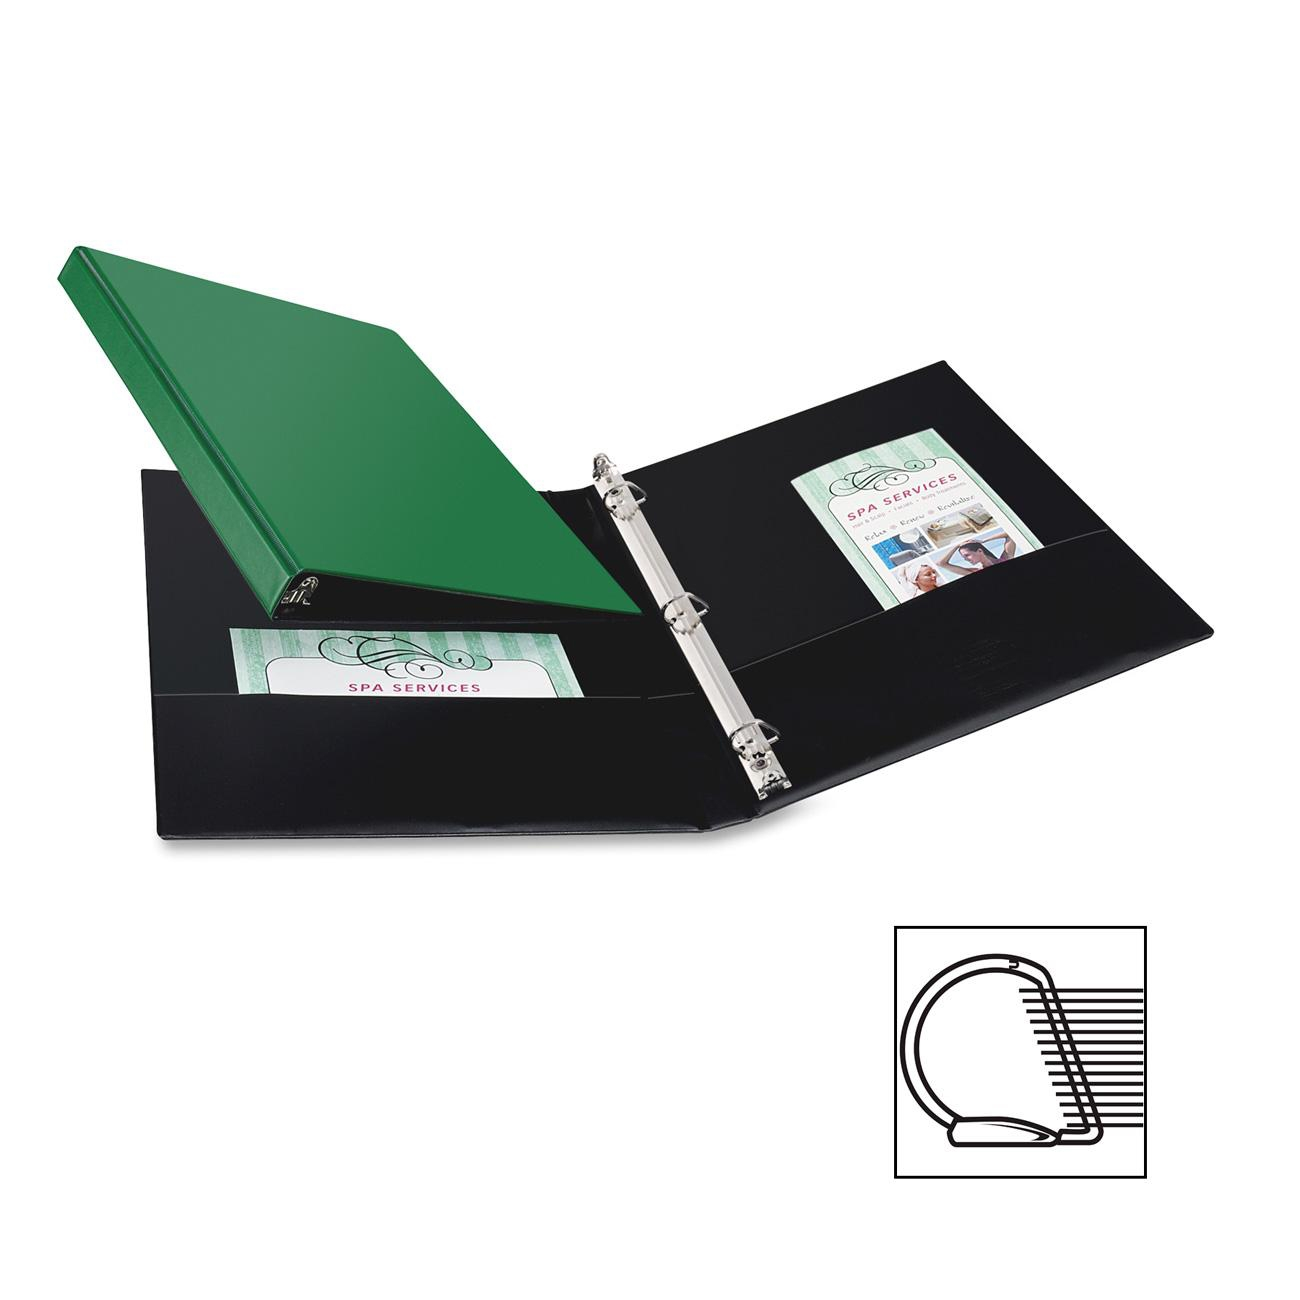 """Avery Durable Reference Binders - 11"""" X 8.5"""" - 0.5"""" Capacity - Green (27053)"""